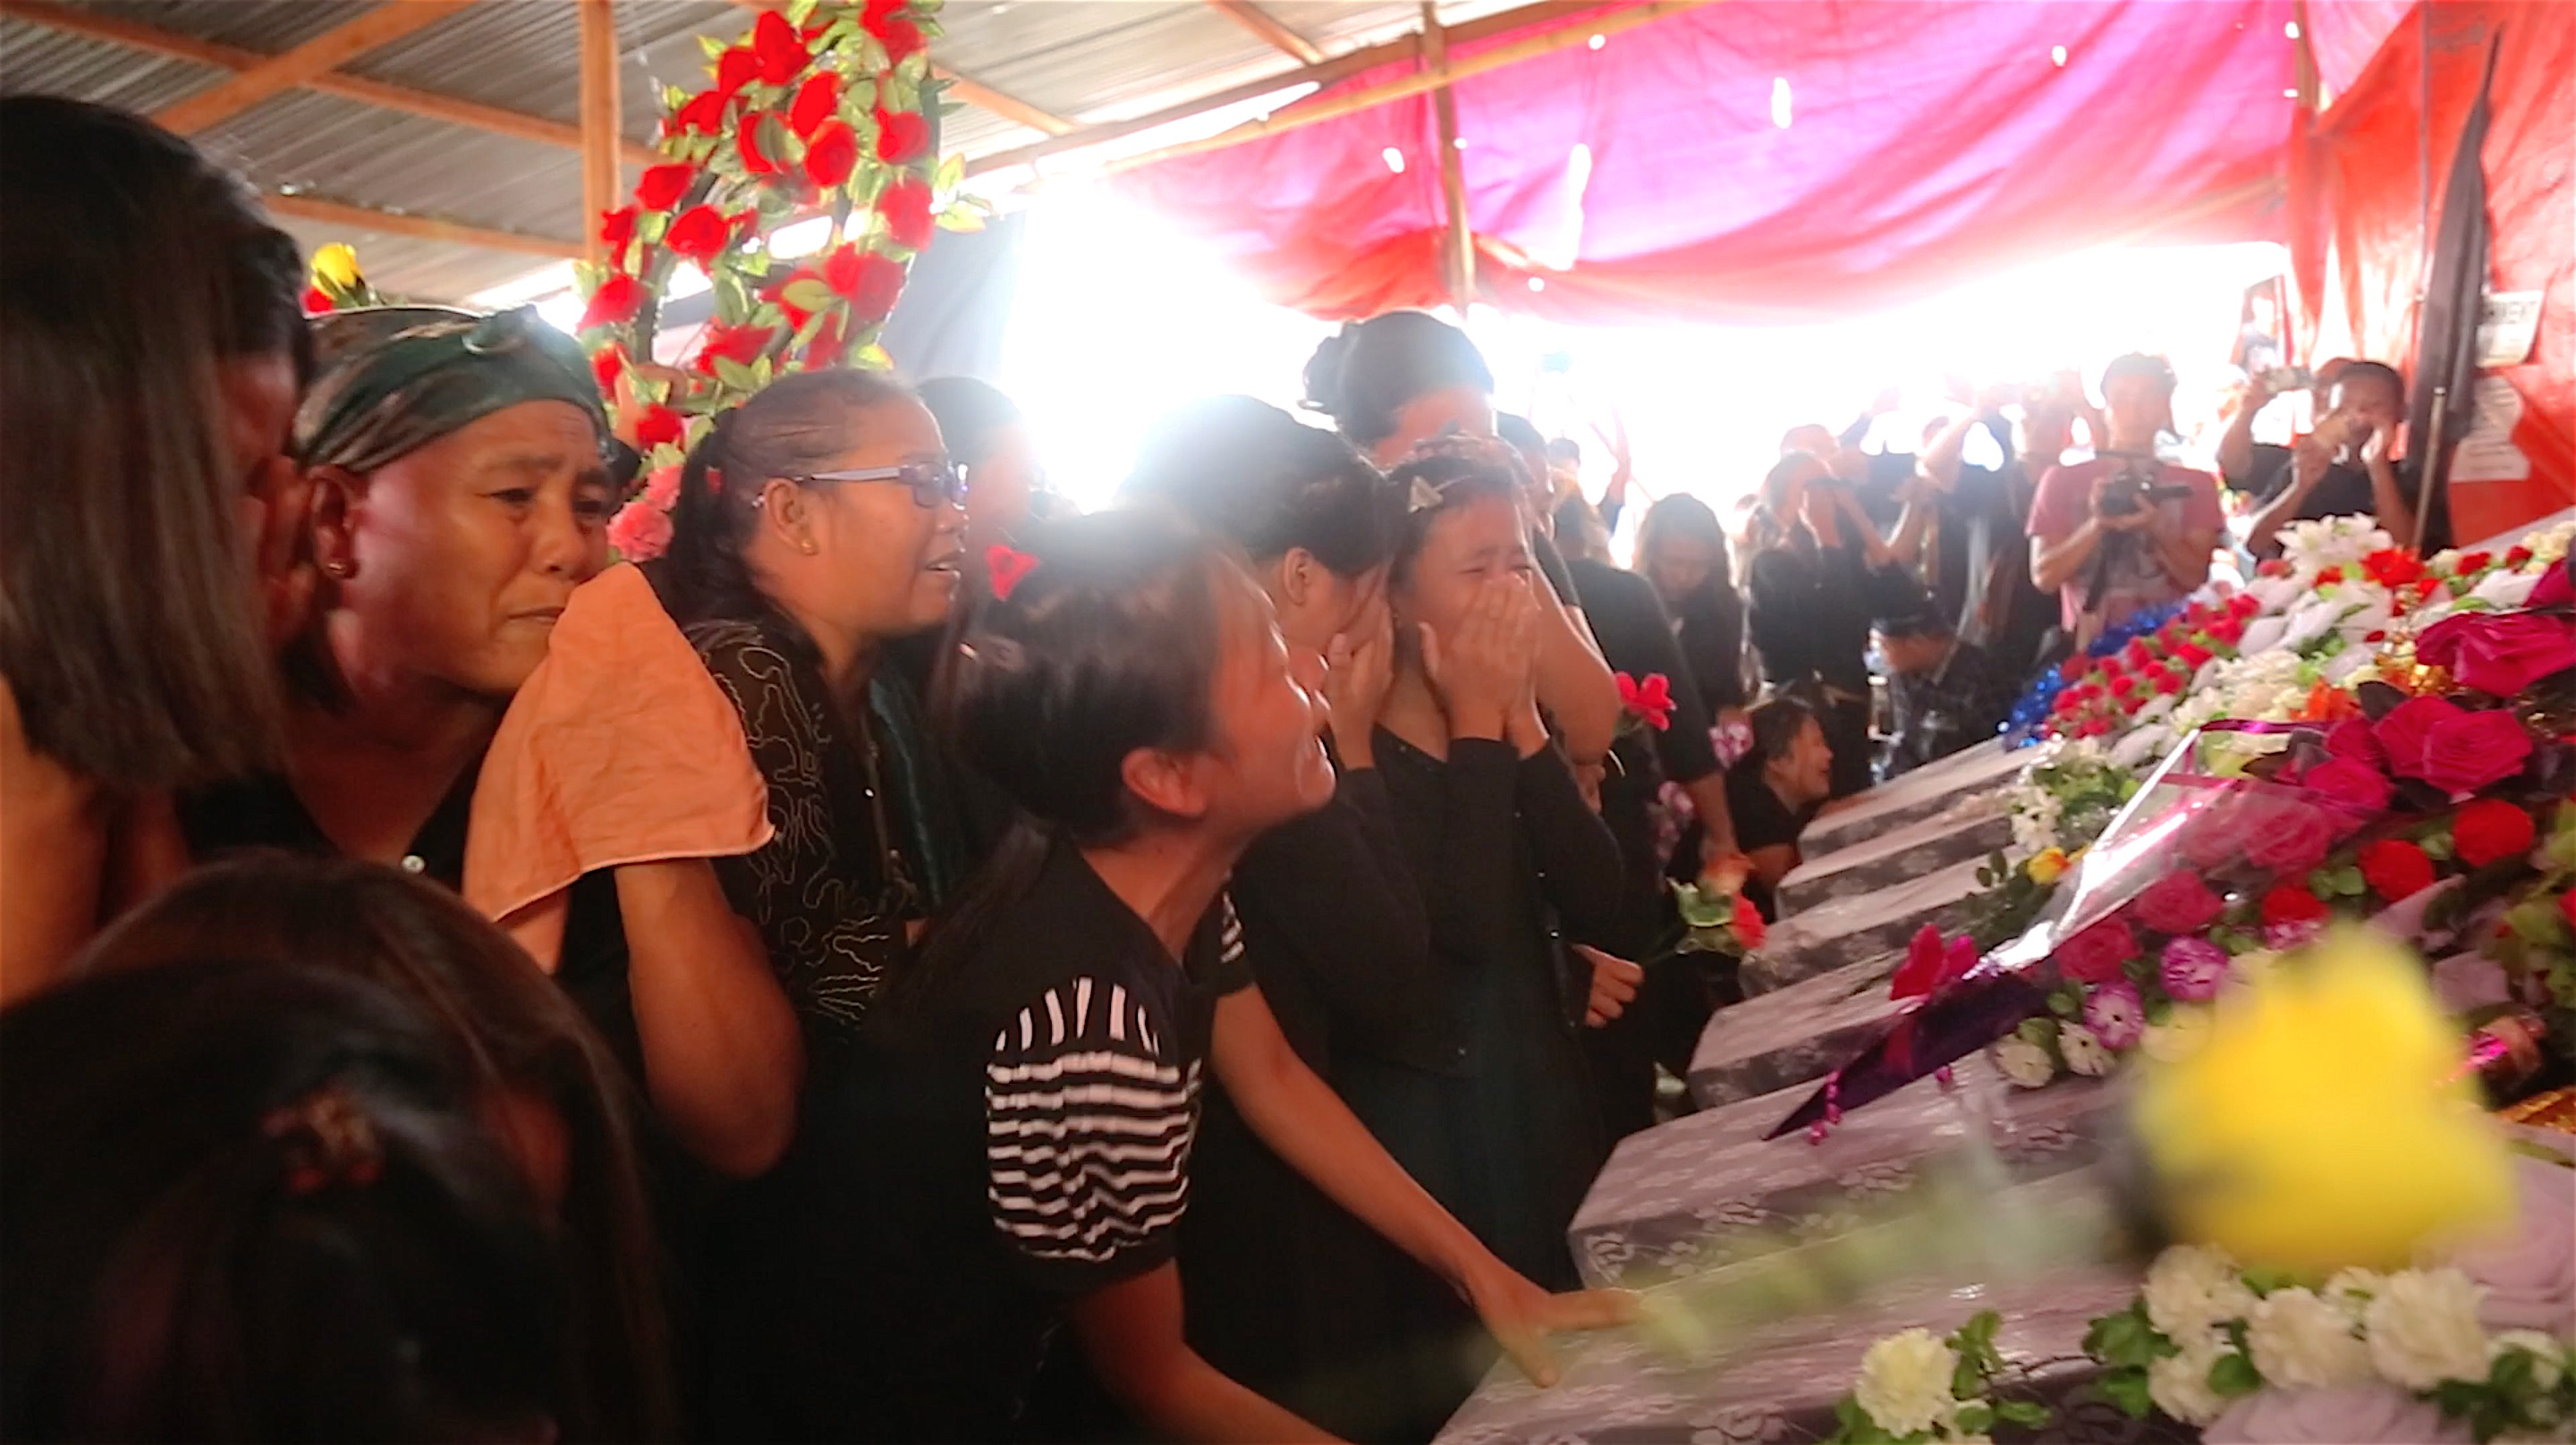 Women and children pay respect to the dead with flower tribute on the symbolic coffins. Credit: Akhil Kumar